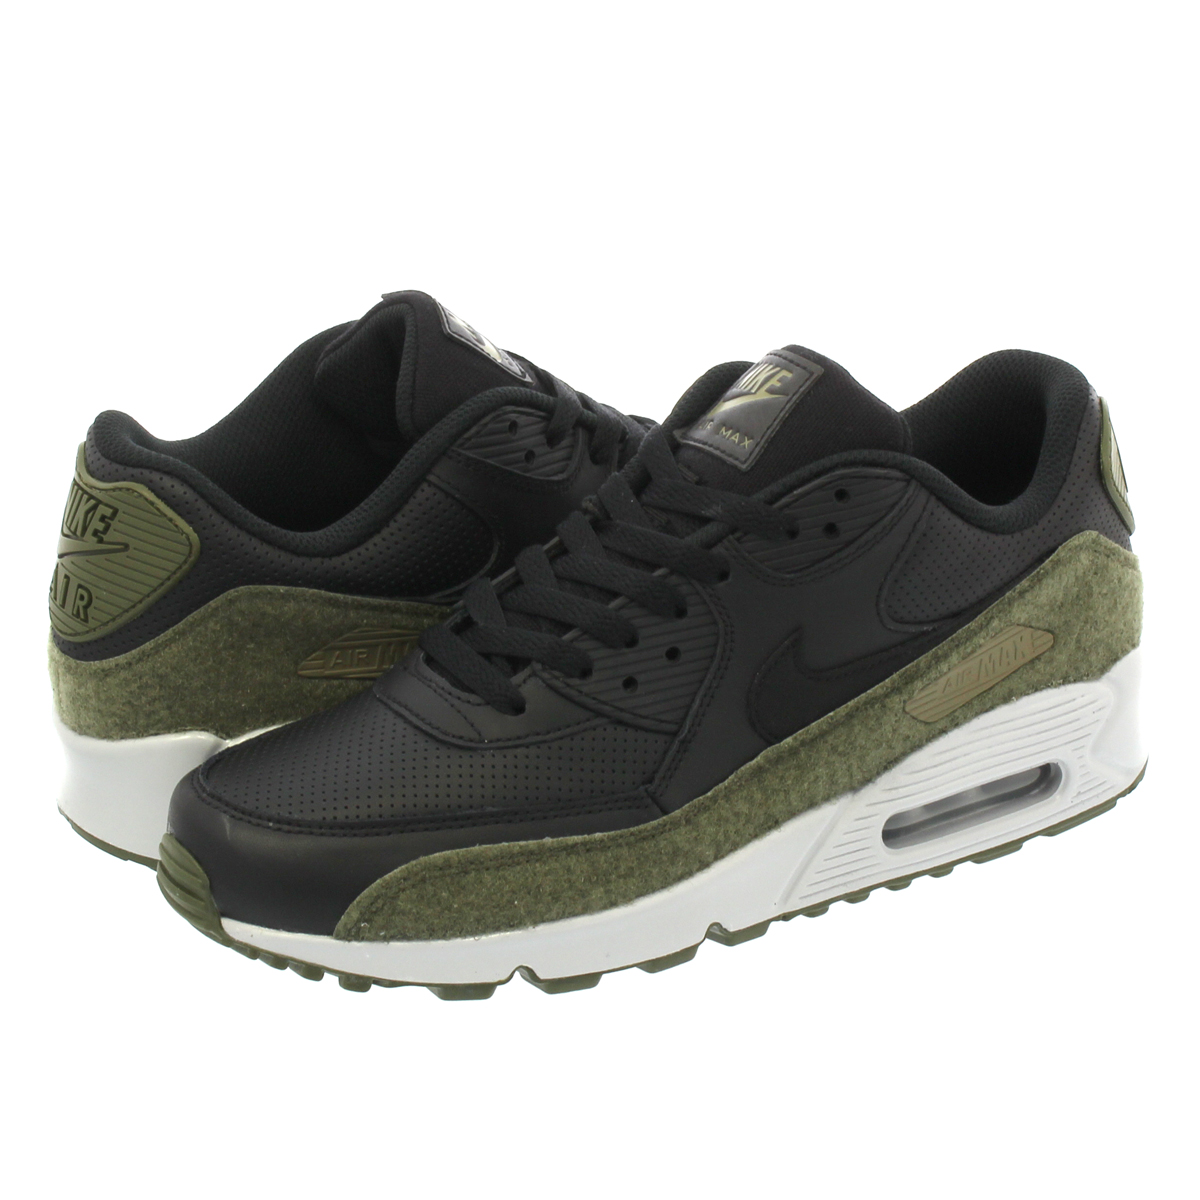 official photos 09d57 2cc47 NIKE AIR MAX 90 HAL Kie Ney AMAX 90 HAL BLACK MEDIUM OLIVE FLAT SILVER